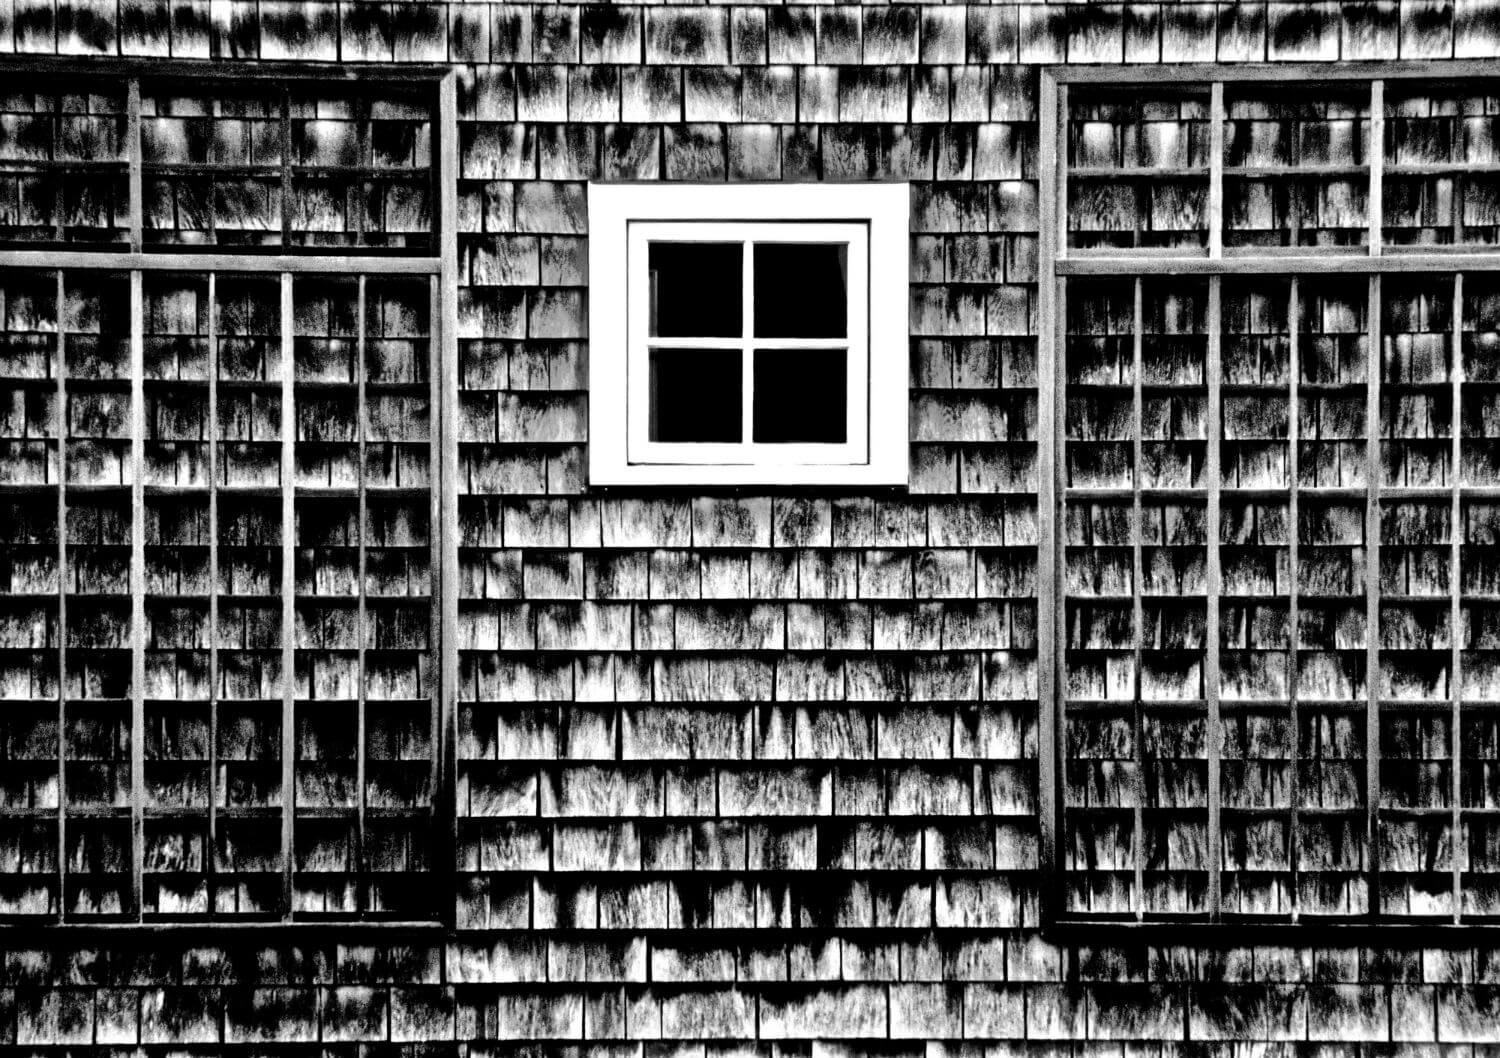 "B&W Study II, 13"" x 19"" side of shingled house with window liz fiedorek fine art photography ny rhode island"